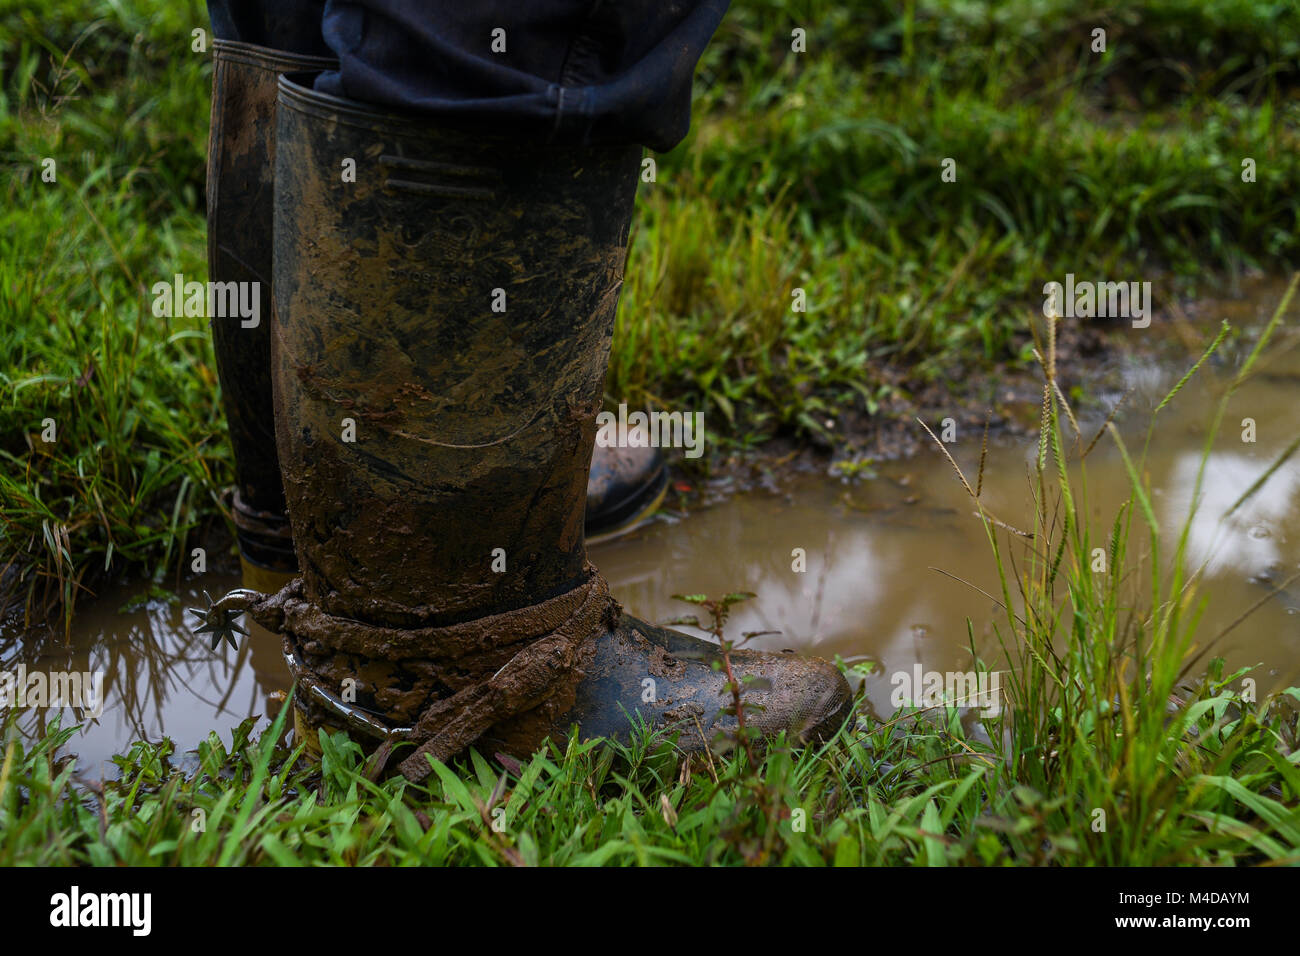 Spurs on a man's boots an indigenous community in rural Nicaragua. - Stock Image